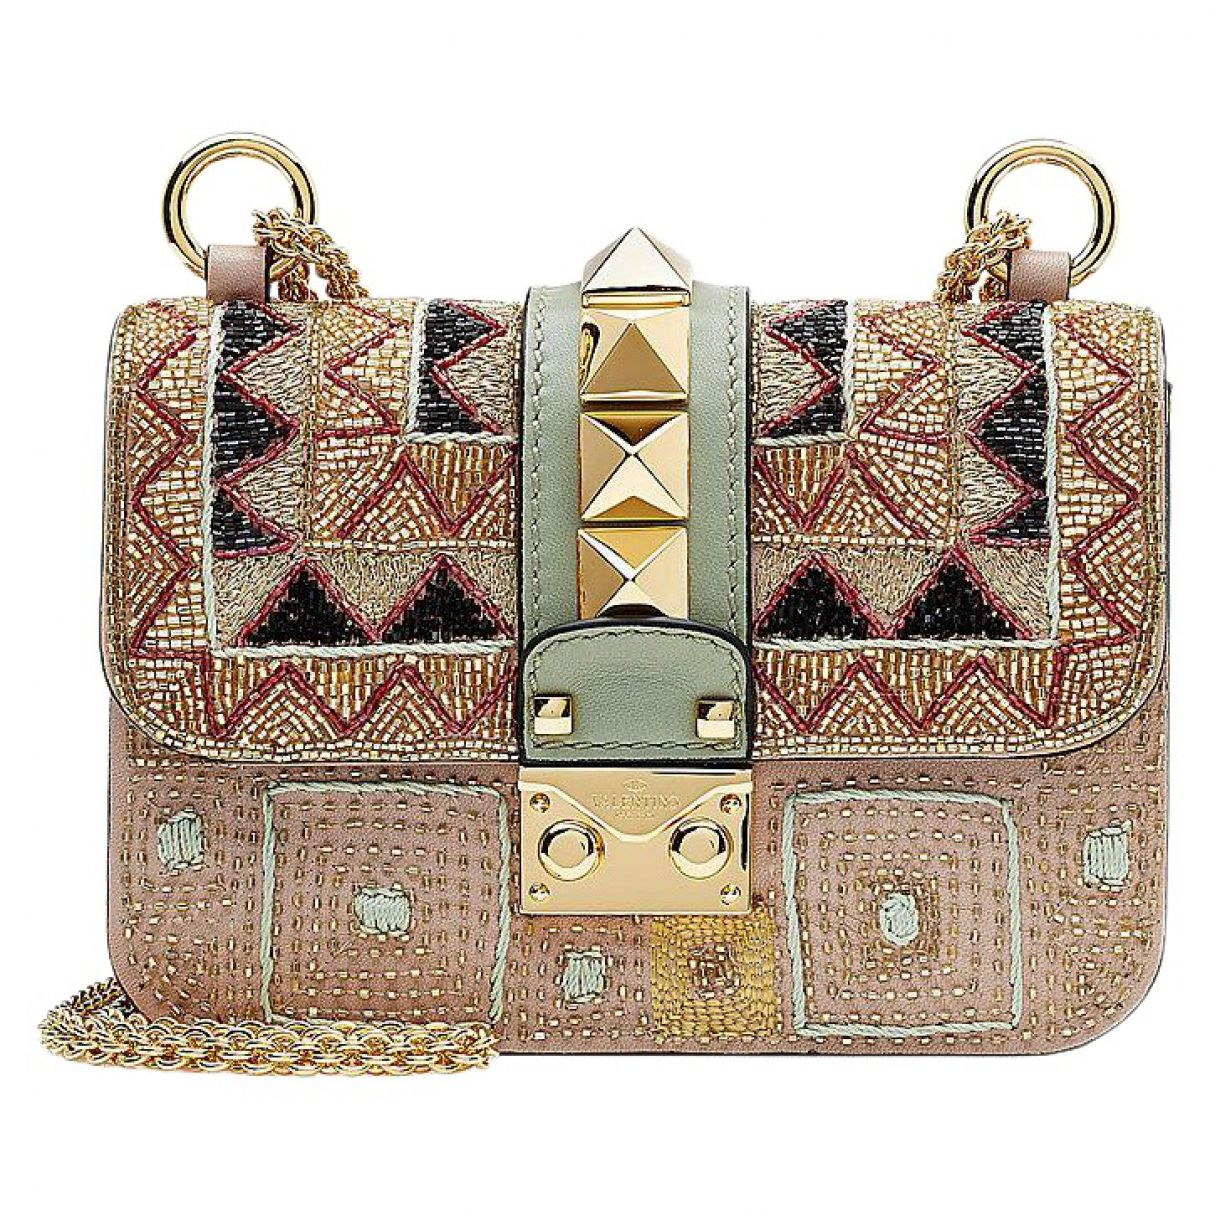 311077cd6c Valentino Limited Edition Bag | Vestiaire Collective | PINK ...